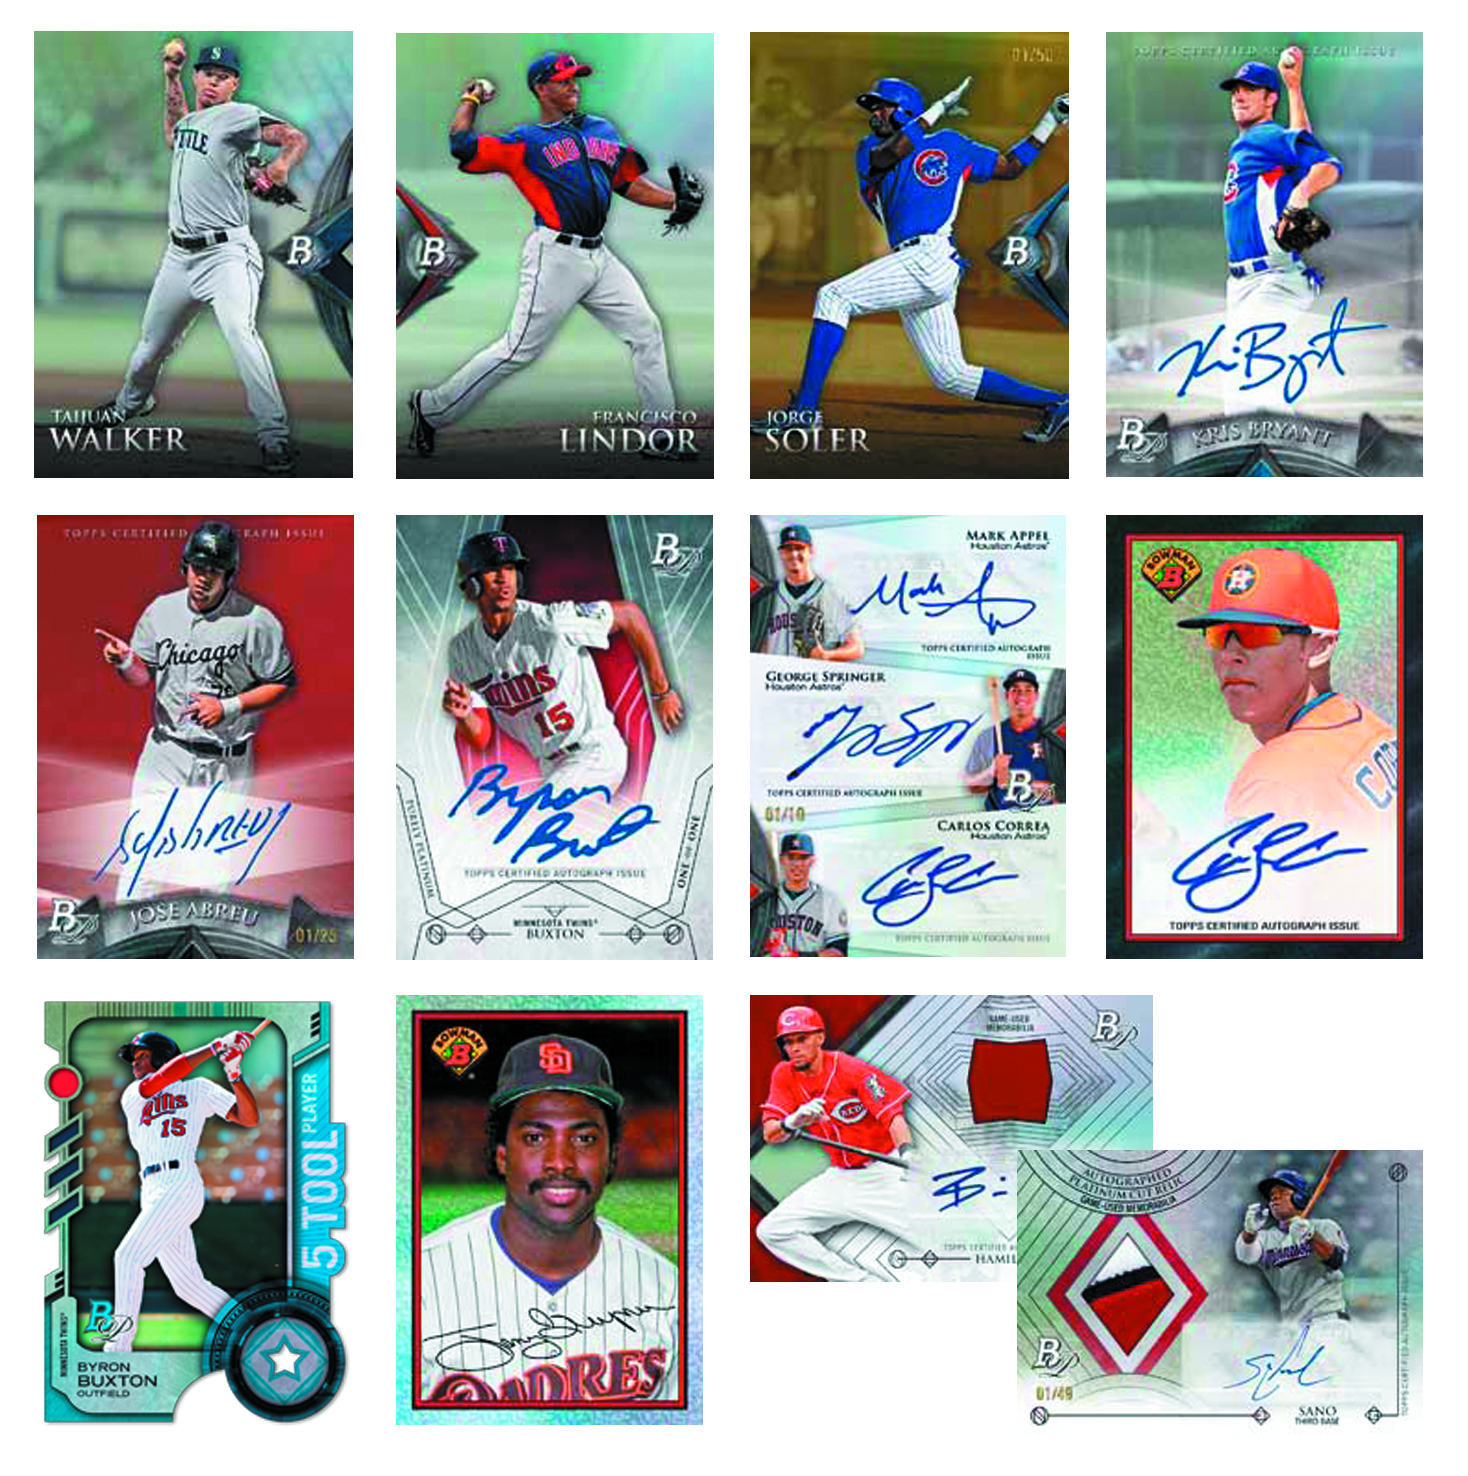 BOWMAN 2014 PLATINUM BASEBALL T/C BOX